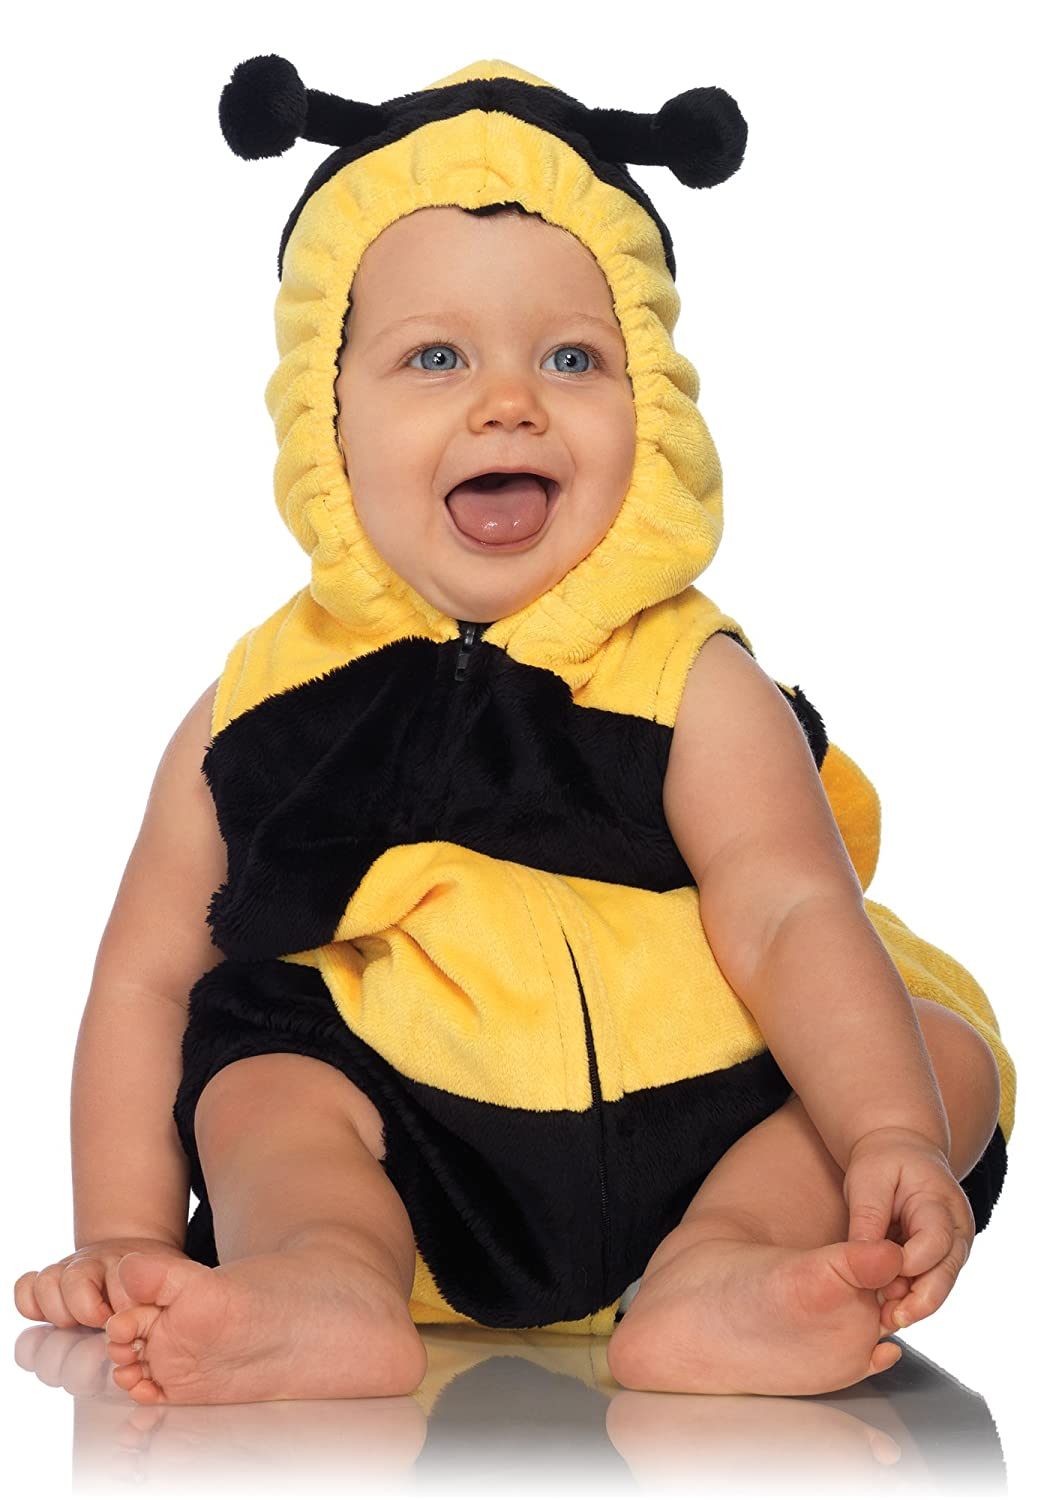 Amazon.com Leg Avenue Anne Geddes Bumble Bee Baby Padded Body Suit with Zipper Closure Black/Yellow 18M-24M Clothing  sc 1 st  Amazon.com & Amazon.com: Leg Avenue Anne Geddes Bumble Bee Baby Padded Body Suit ...